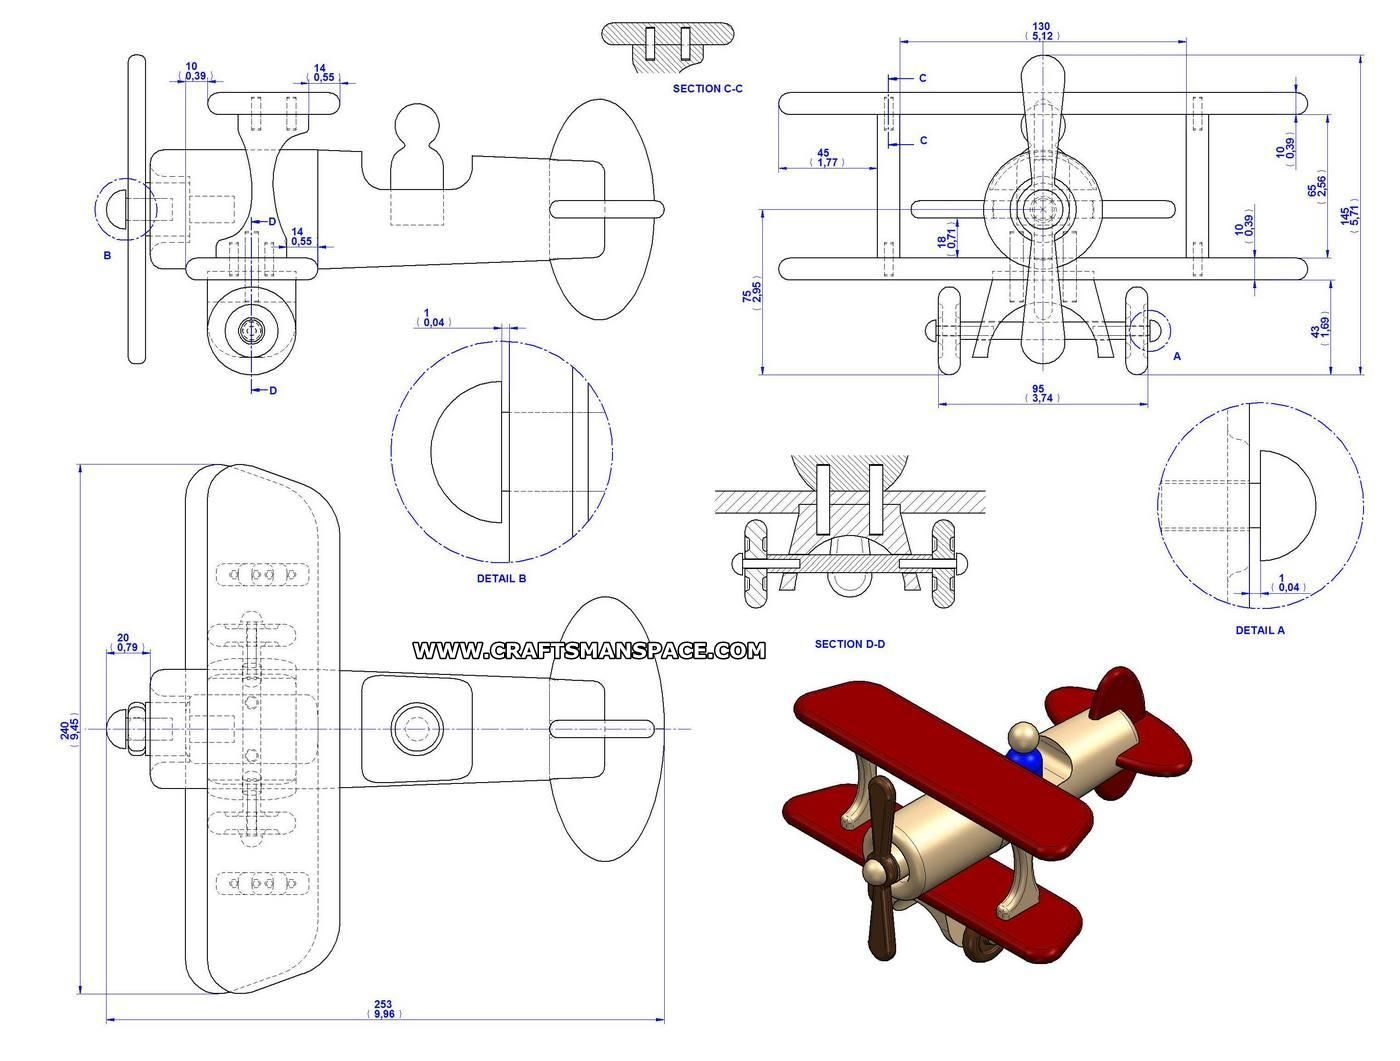 Wooden Toy Plans Free Pdf Discover Woodworking Projects